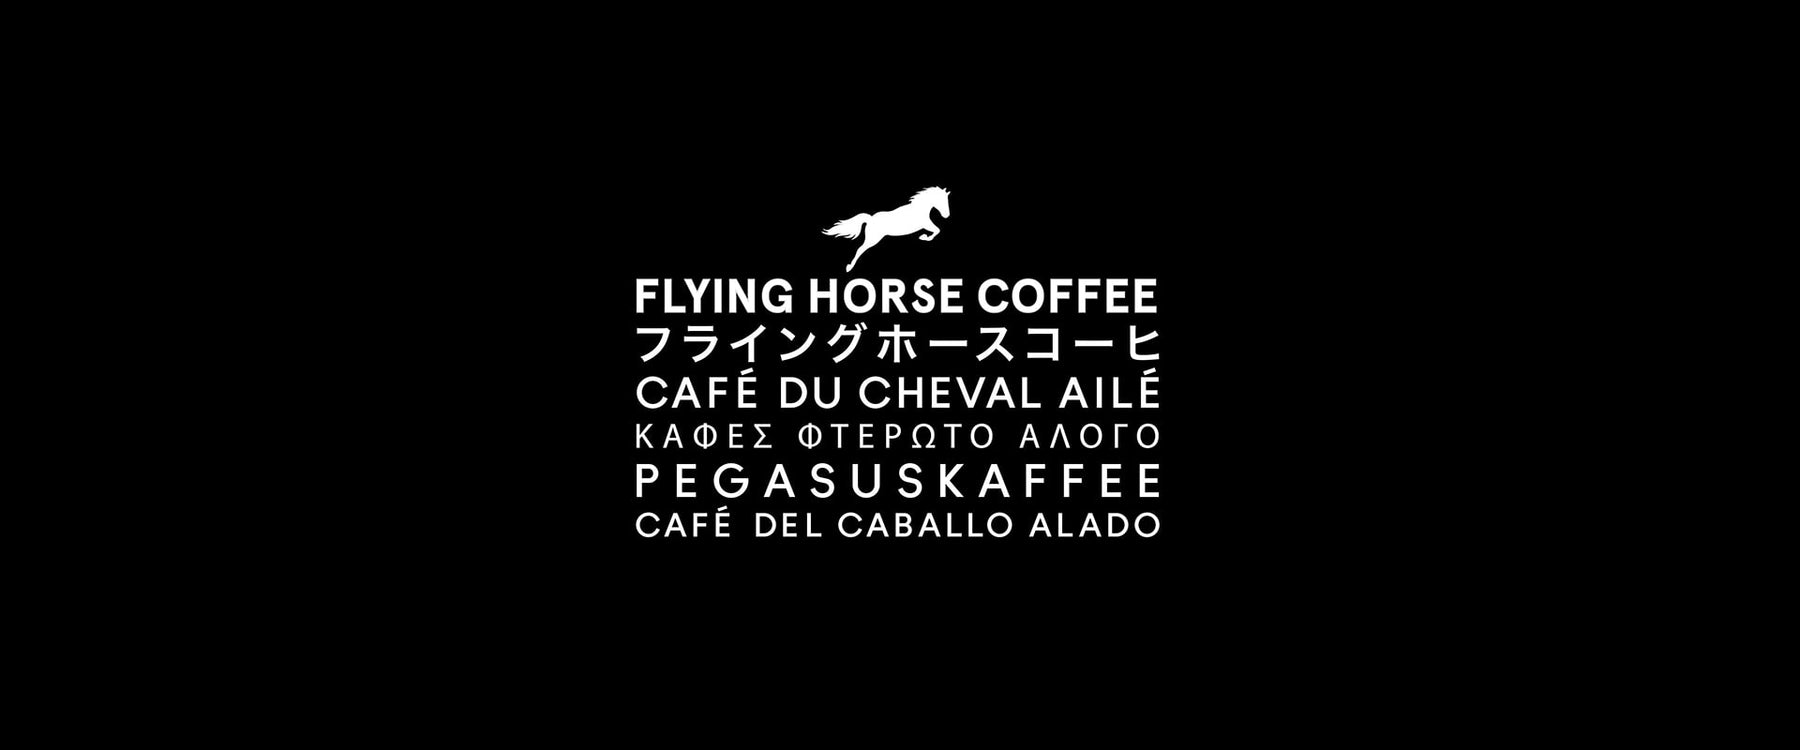 Coffee Roaster Introduction: Flying Horse Coffee